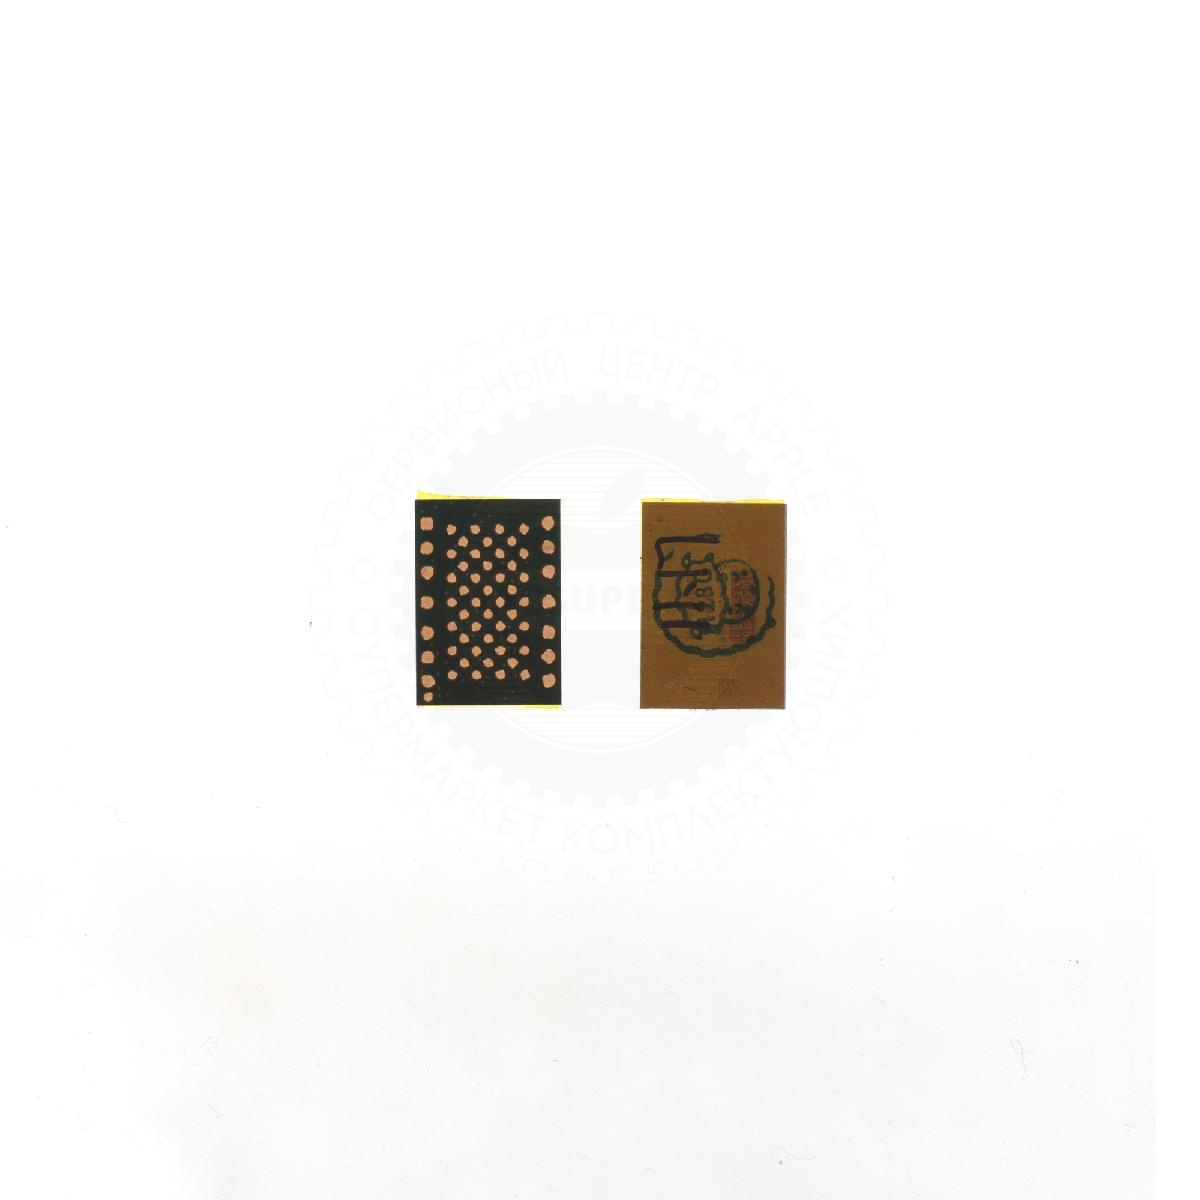 Купить nand flash для iphone 6/6 plus 128gb